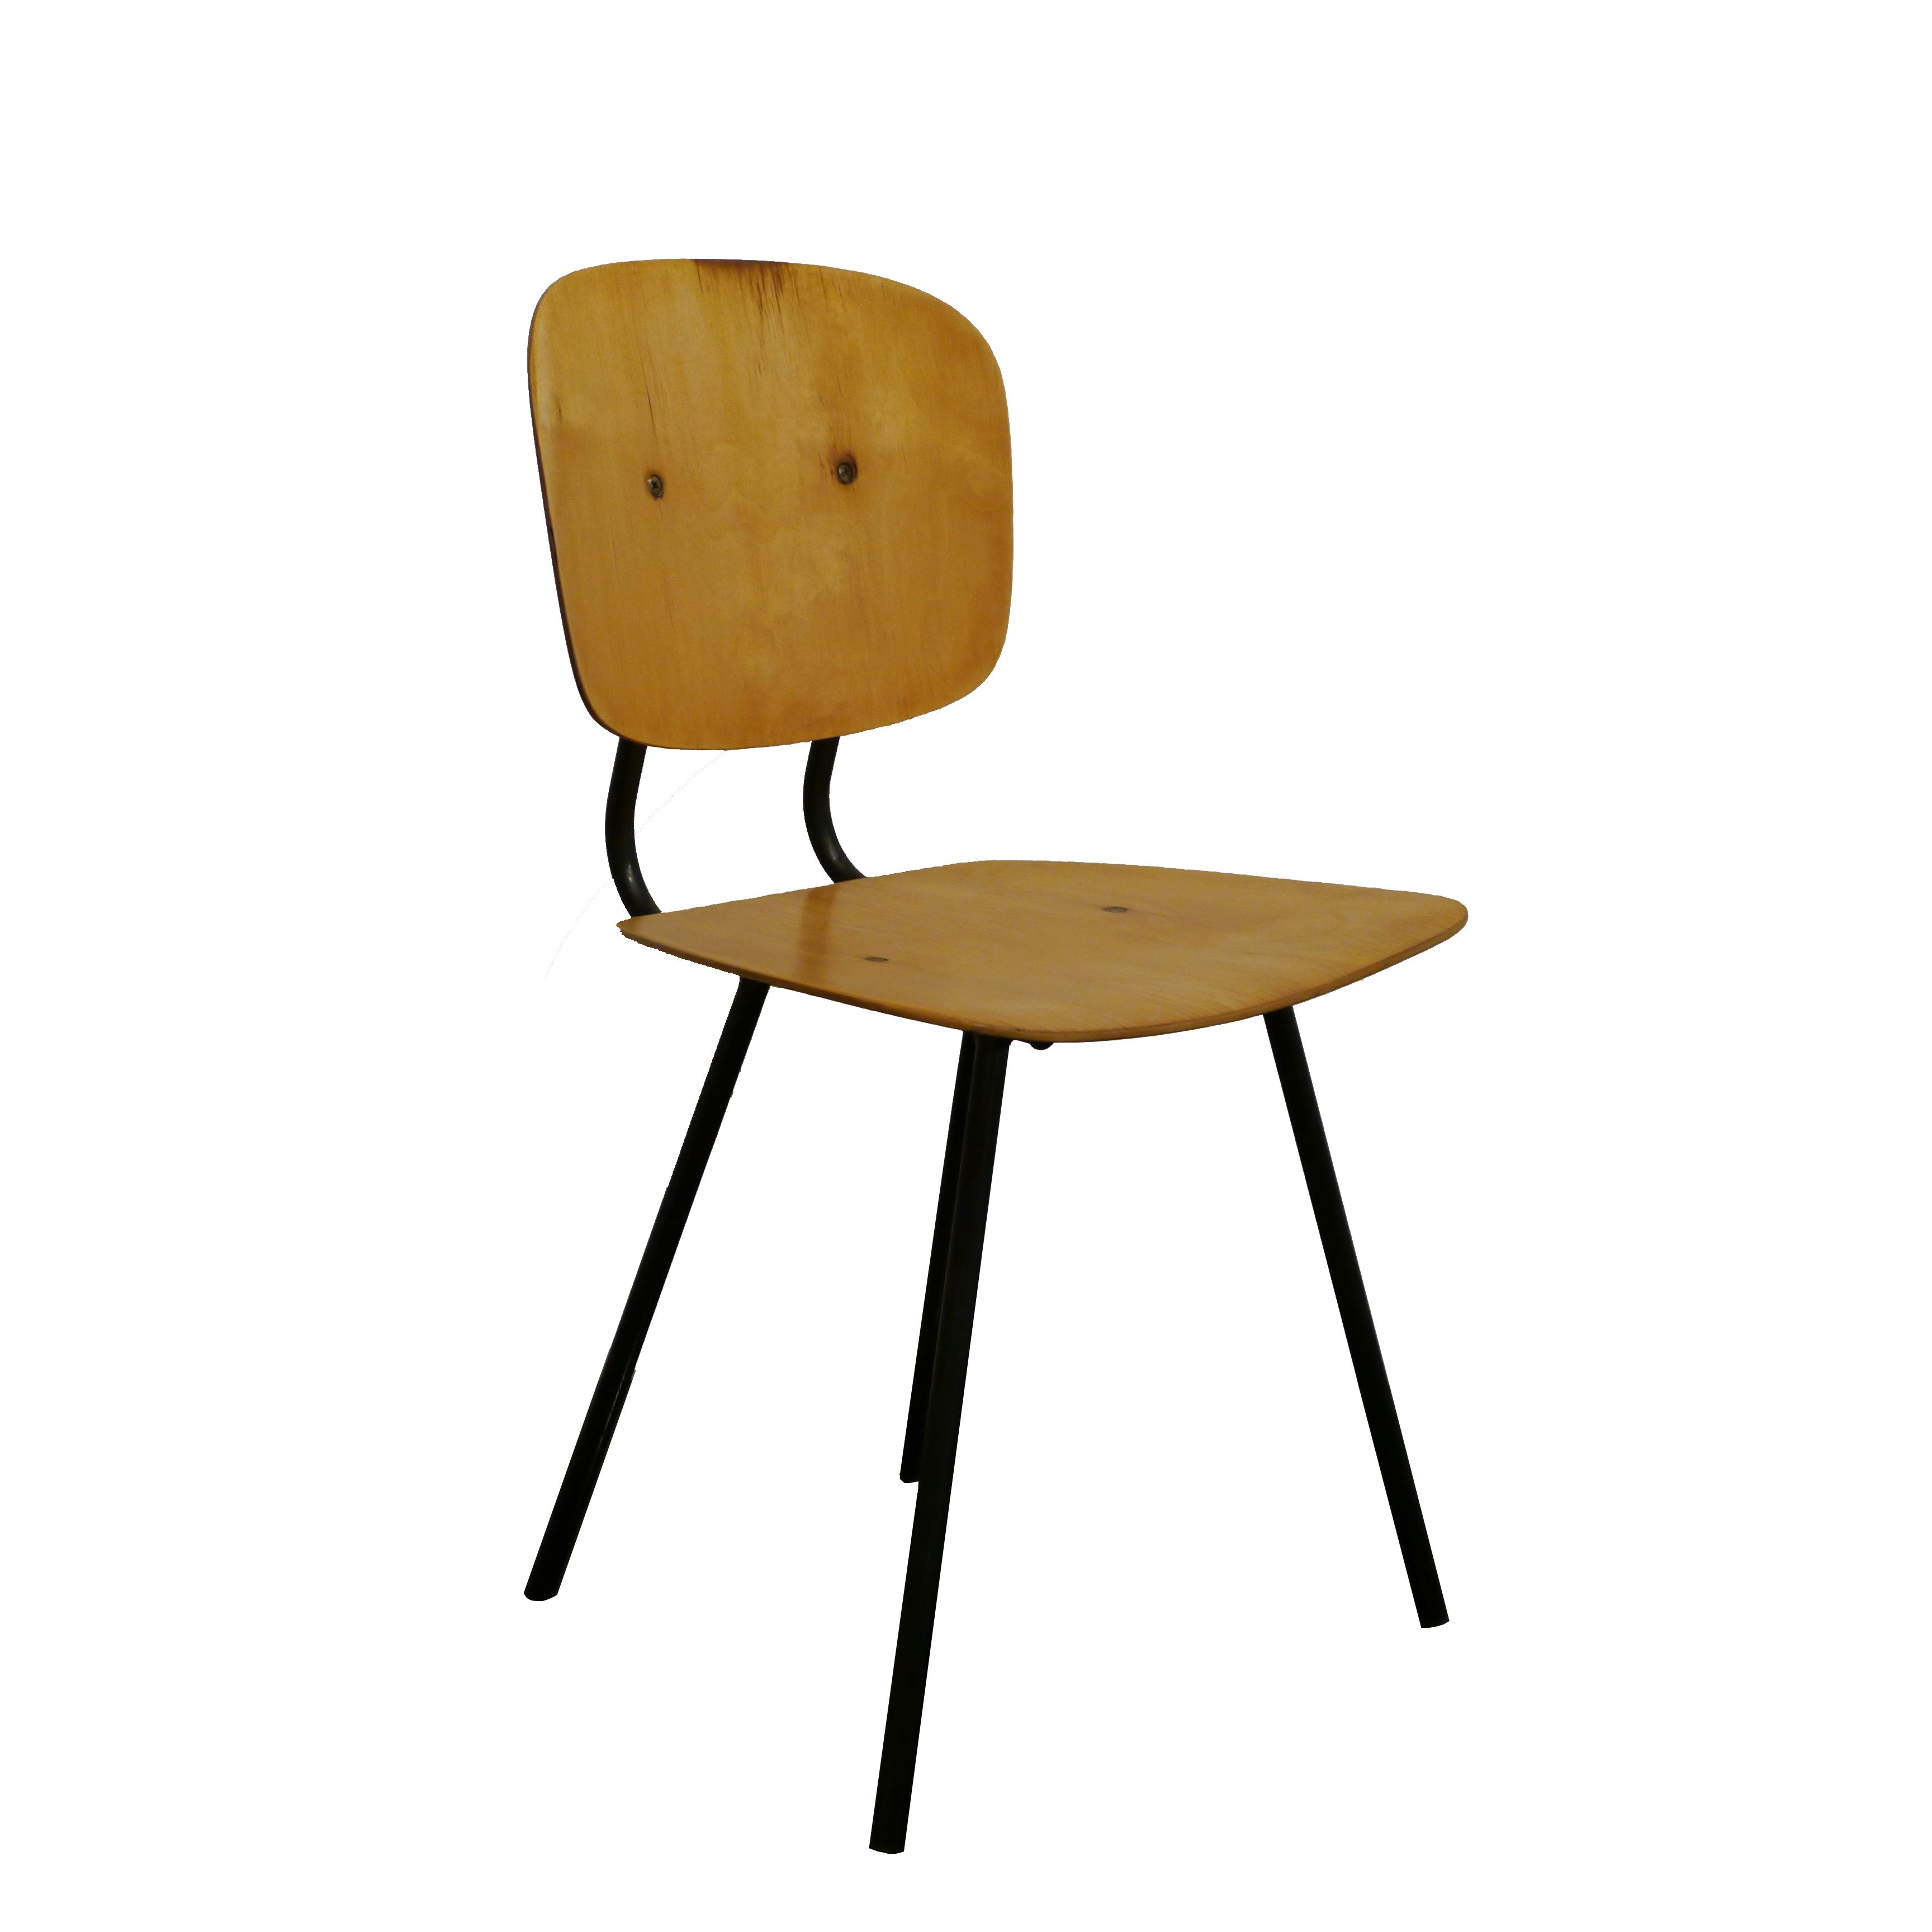 Chaise Enfant Design Chaise Enfant Design 1950 Ma Brocante Dining Chairs Chair Et